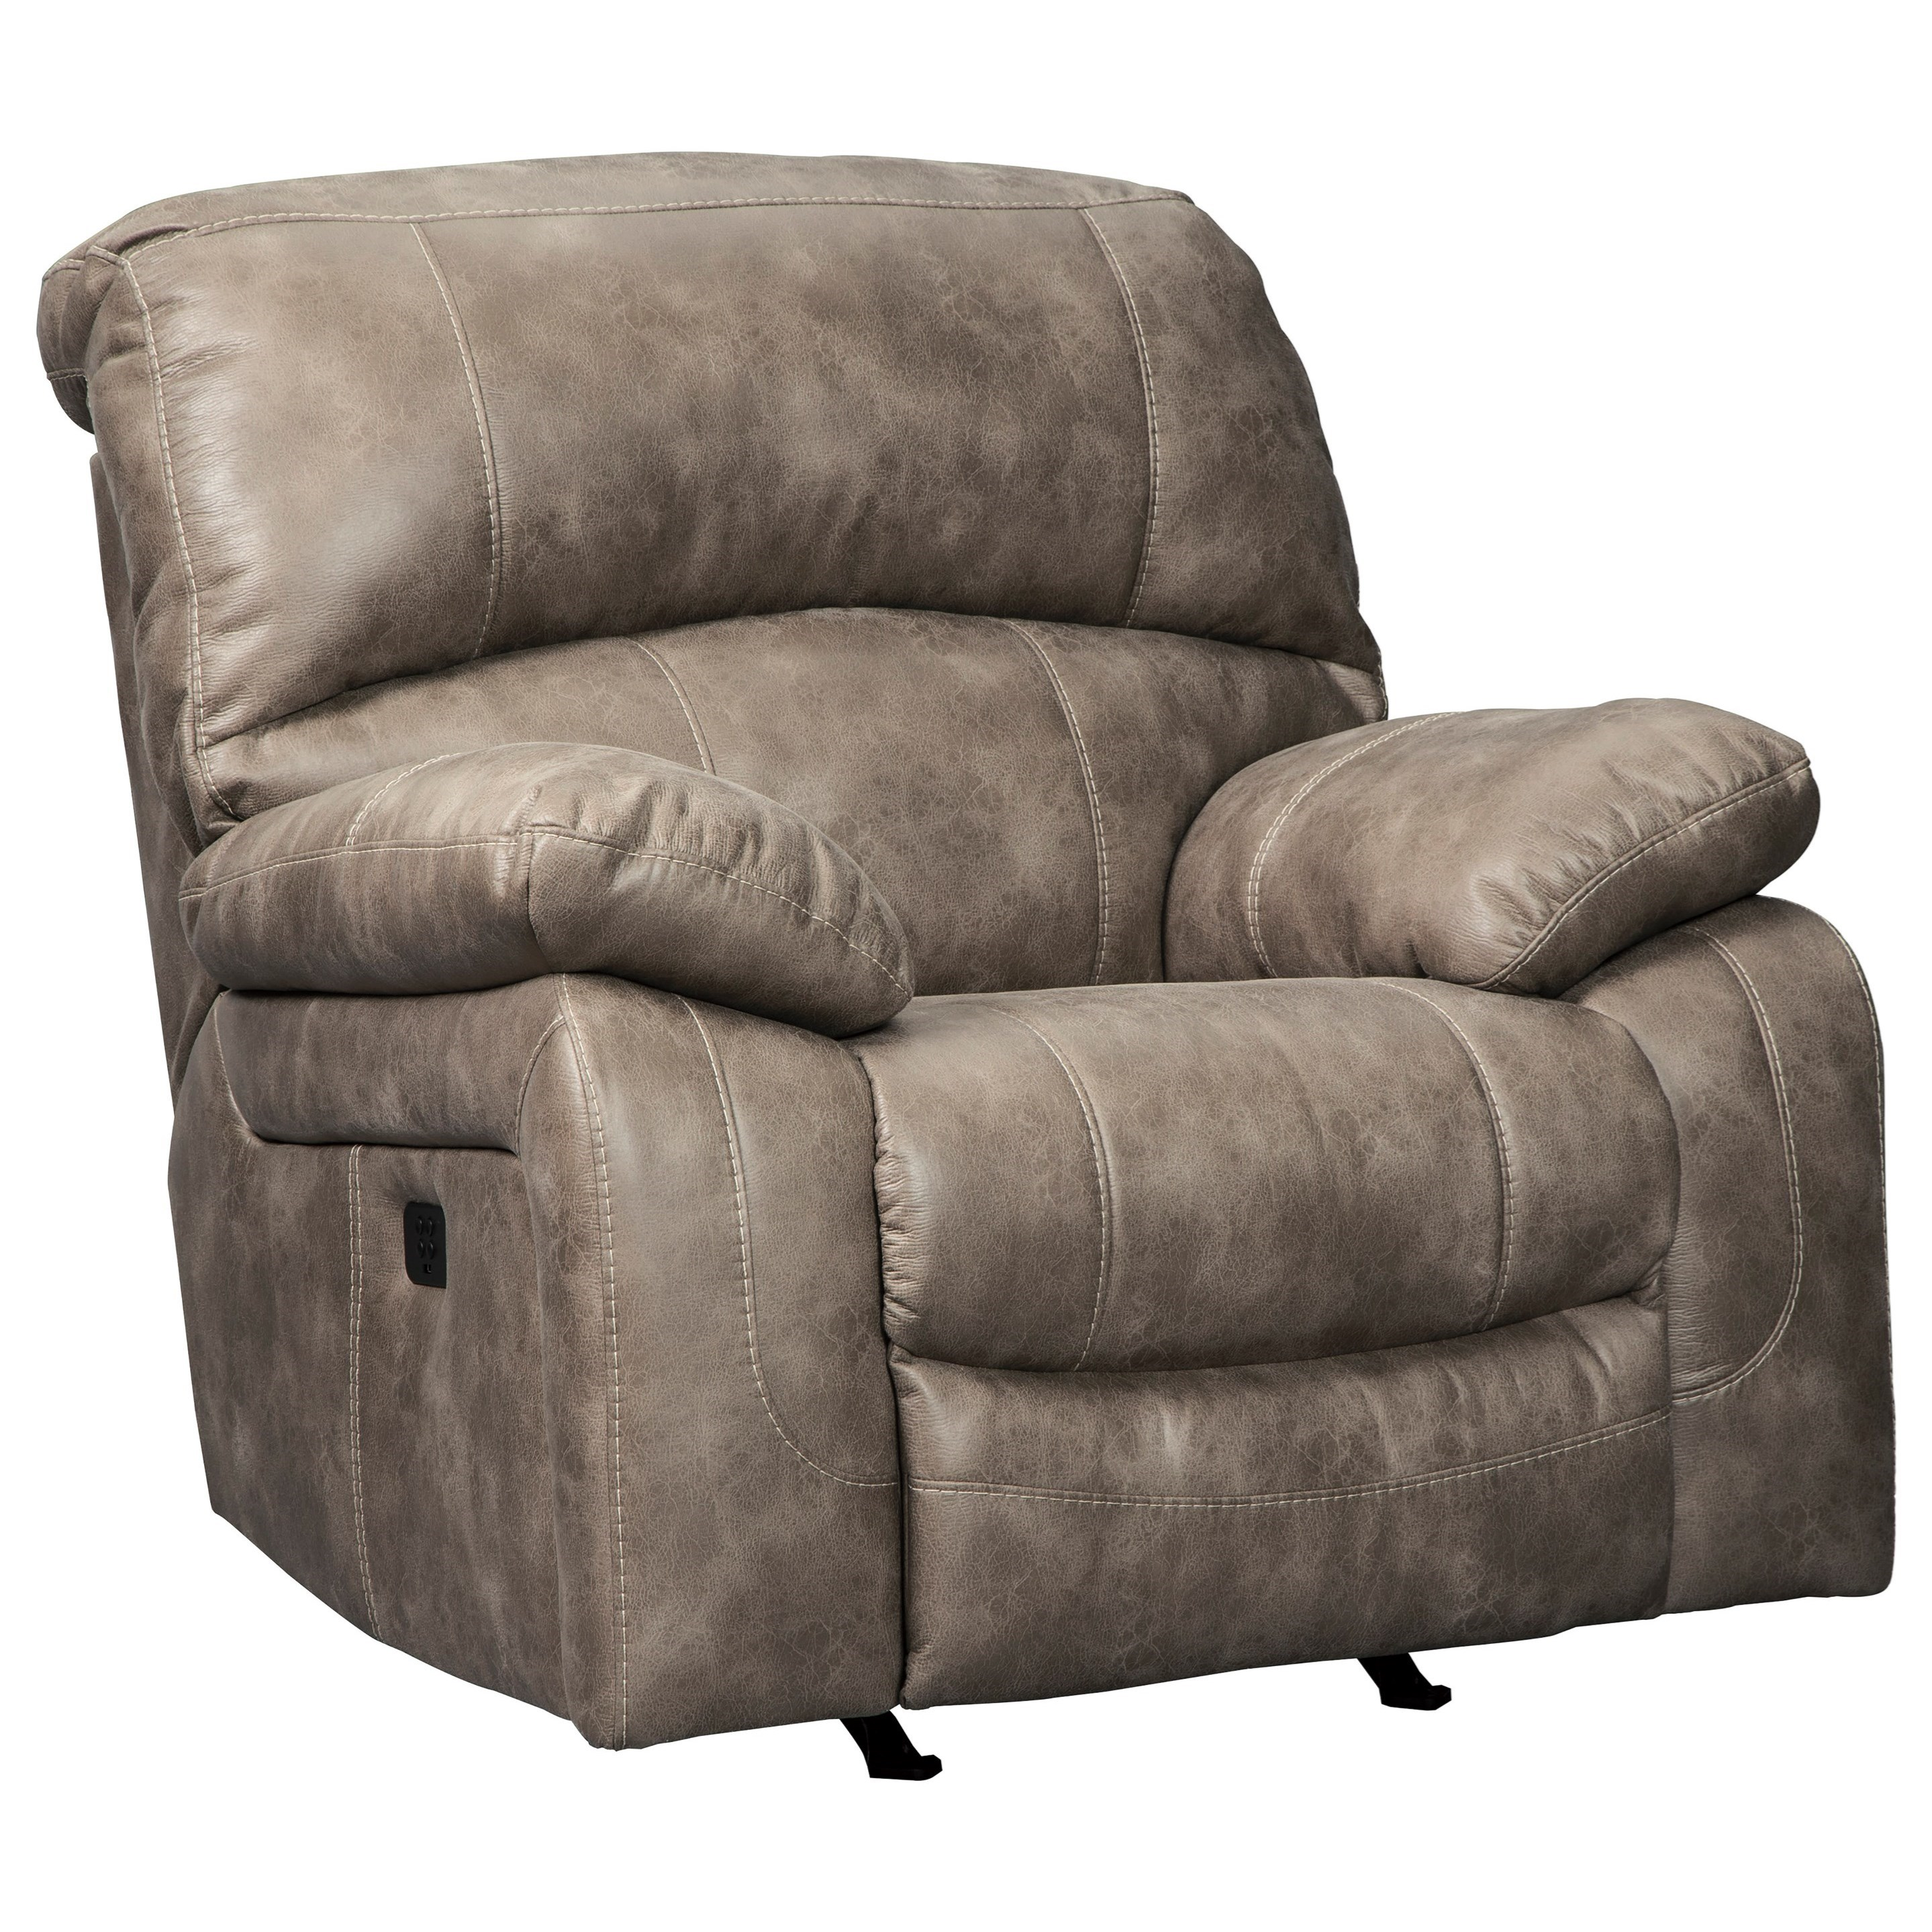 Dunwell Power Rocker Recliner w/ Adjustable Headrest by Signature Design by Ashley at Northeast Factory Direct